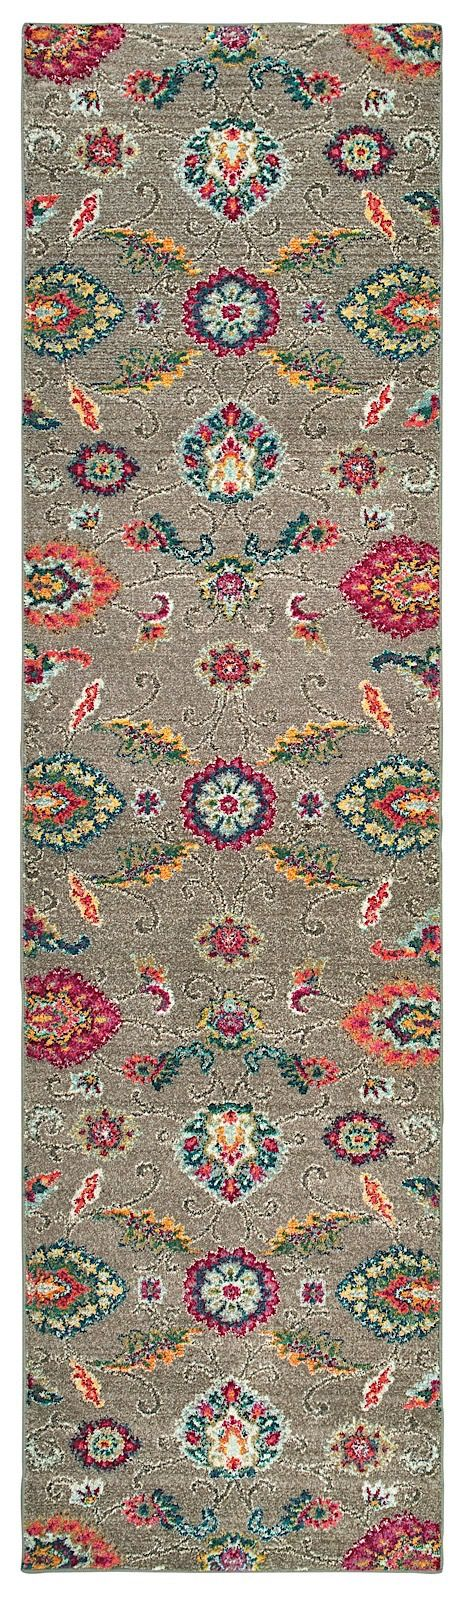 oriental weavers bohemian country & floral area rug collection